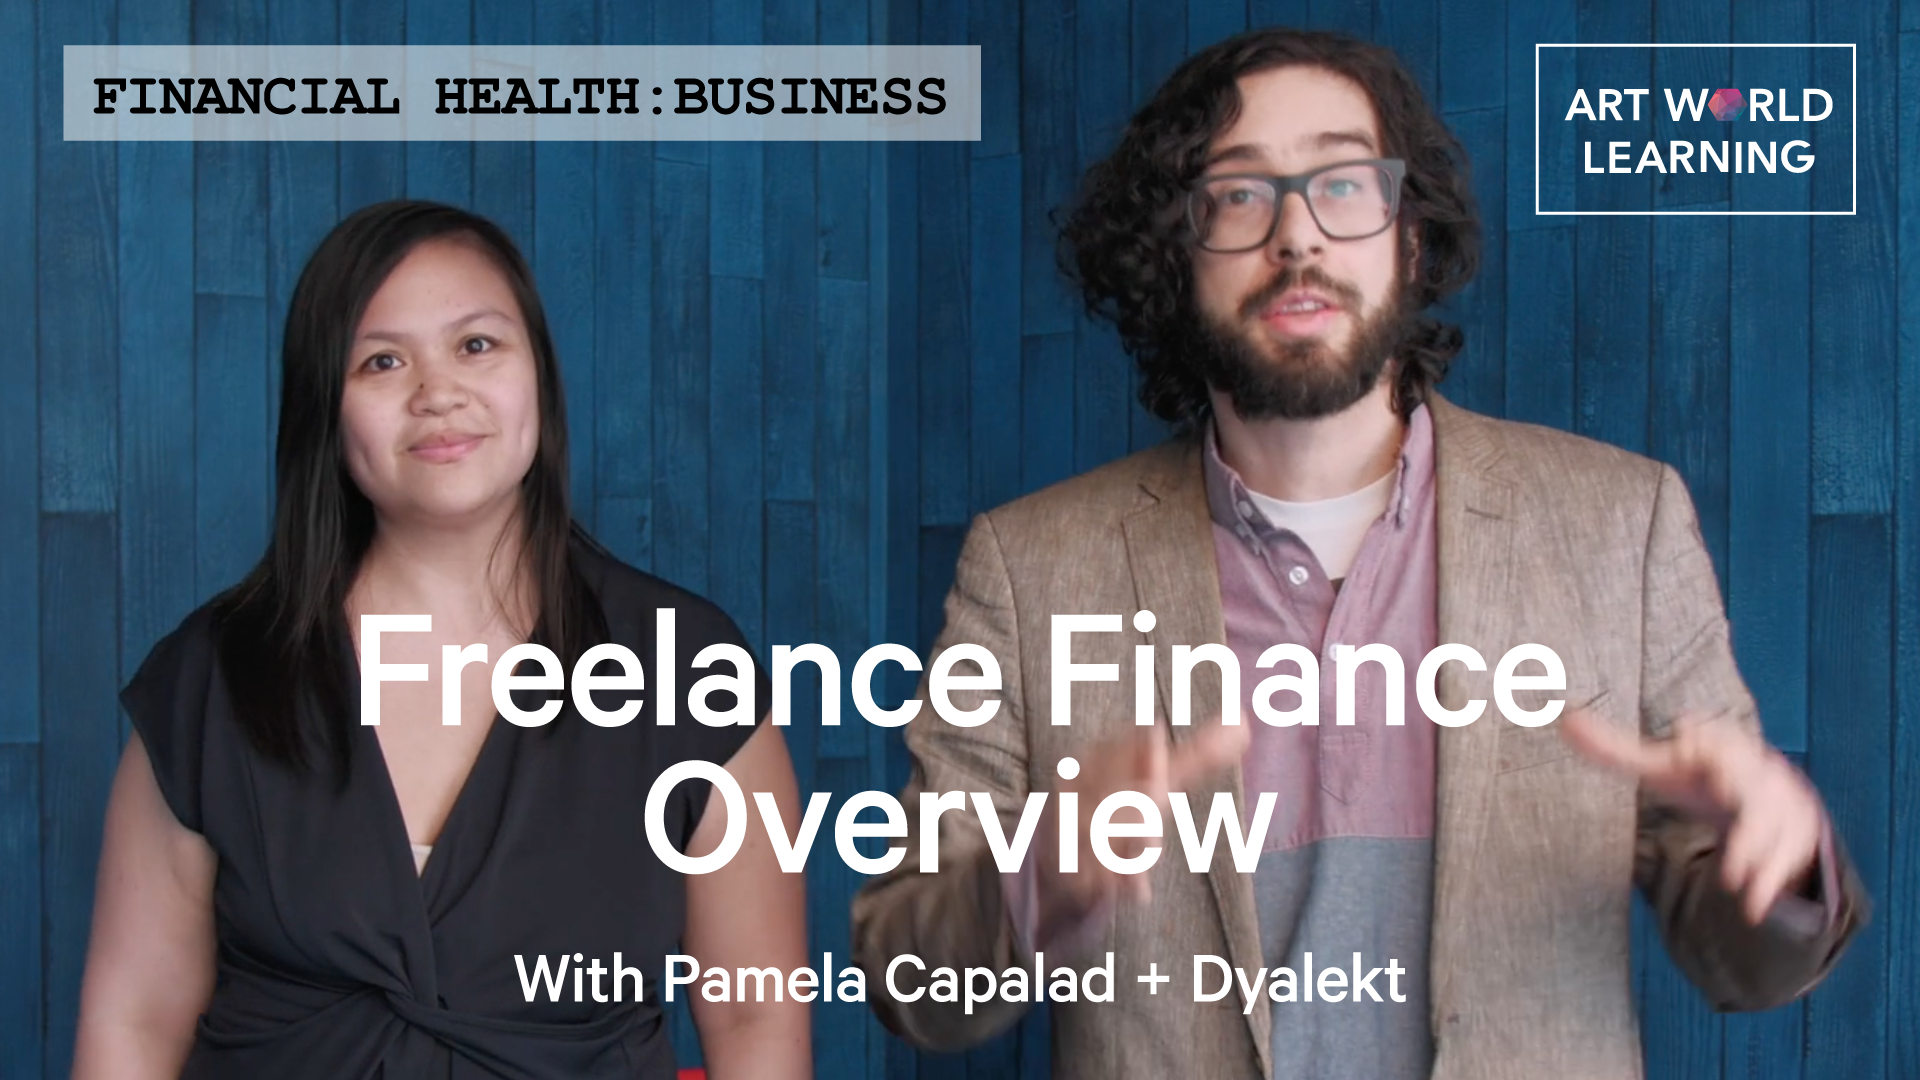 Picture of Pamela Capalad on left and Dyalekt on right with words: Financial Health: Business, Freelance Finance Overview with Pamela Capalad + Dyalekt. Art World Learning logo in top right.